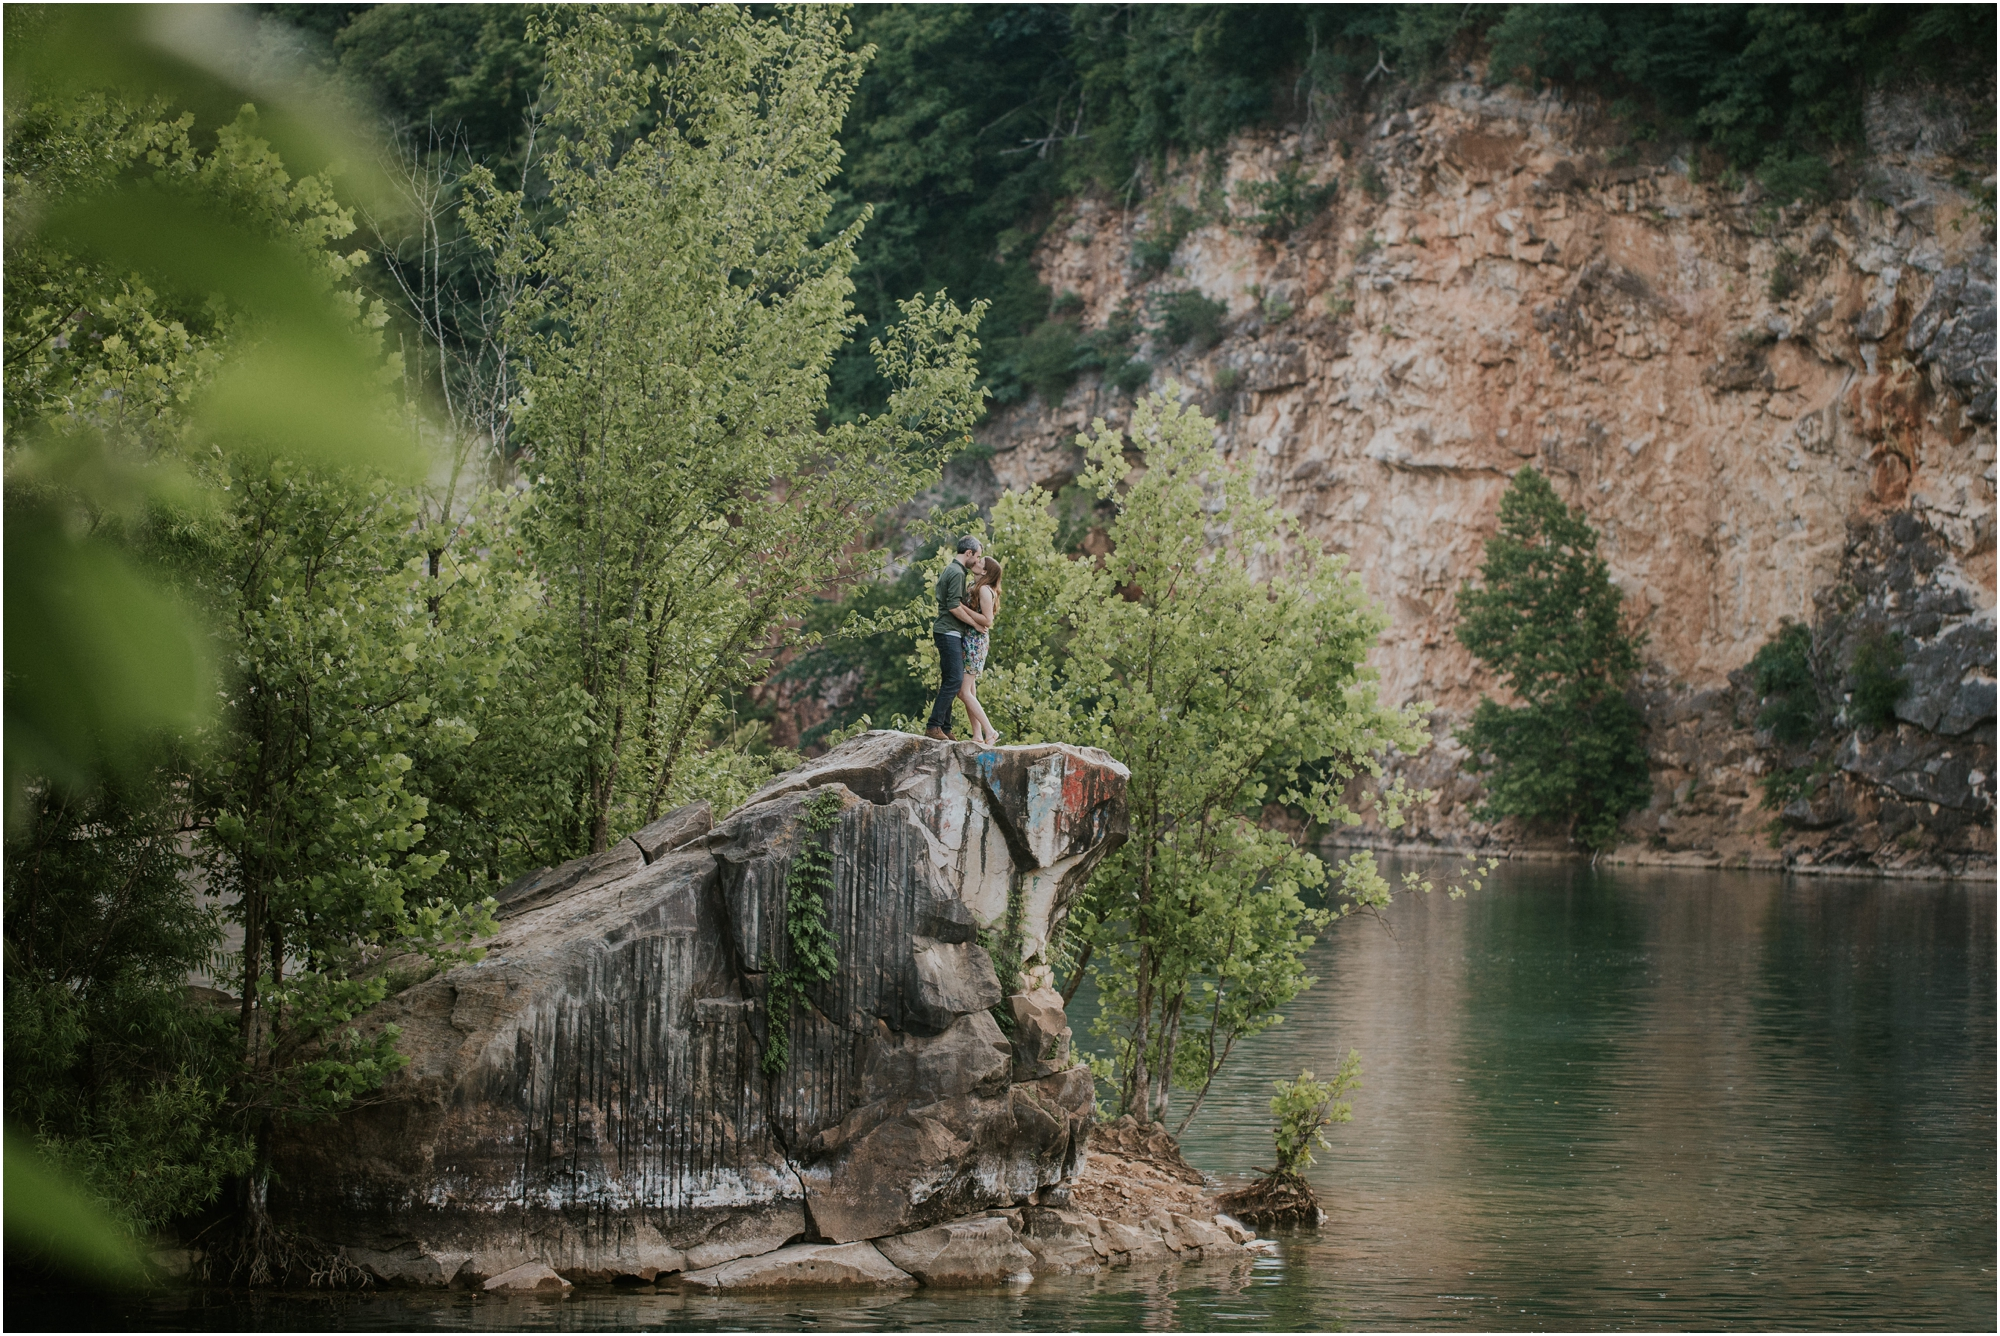 meads-quarry-ijams-nature-center-knoxville-tennessee-engagement-session-summer-northeast-tn-adventurous-outdoors-lake-katy-sergent_0036.jpg